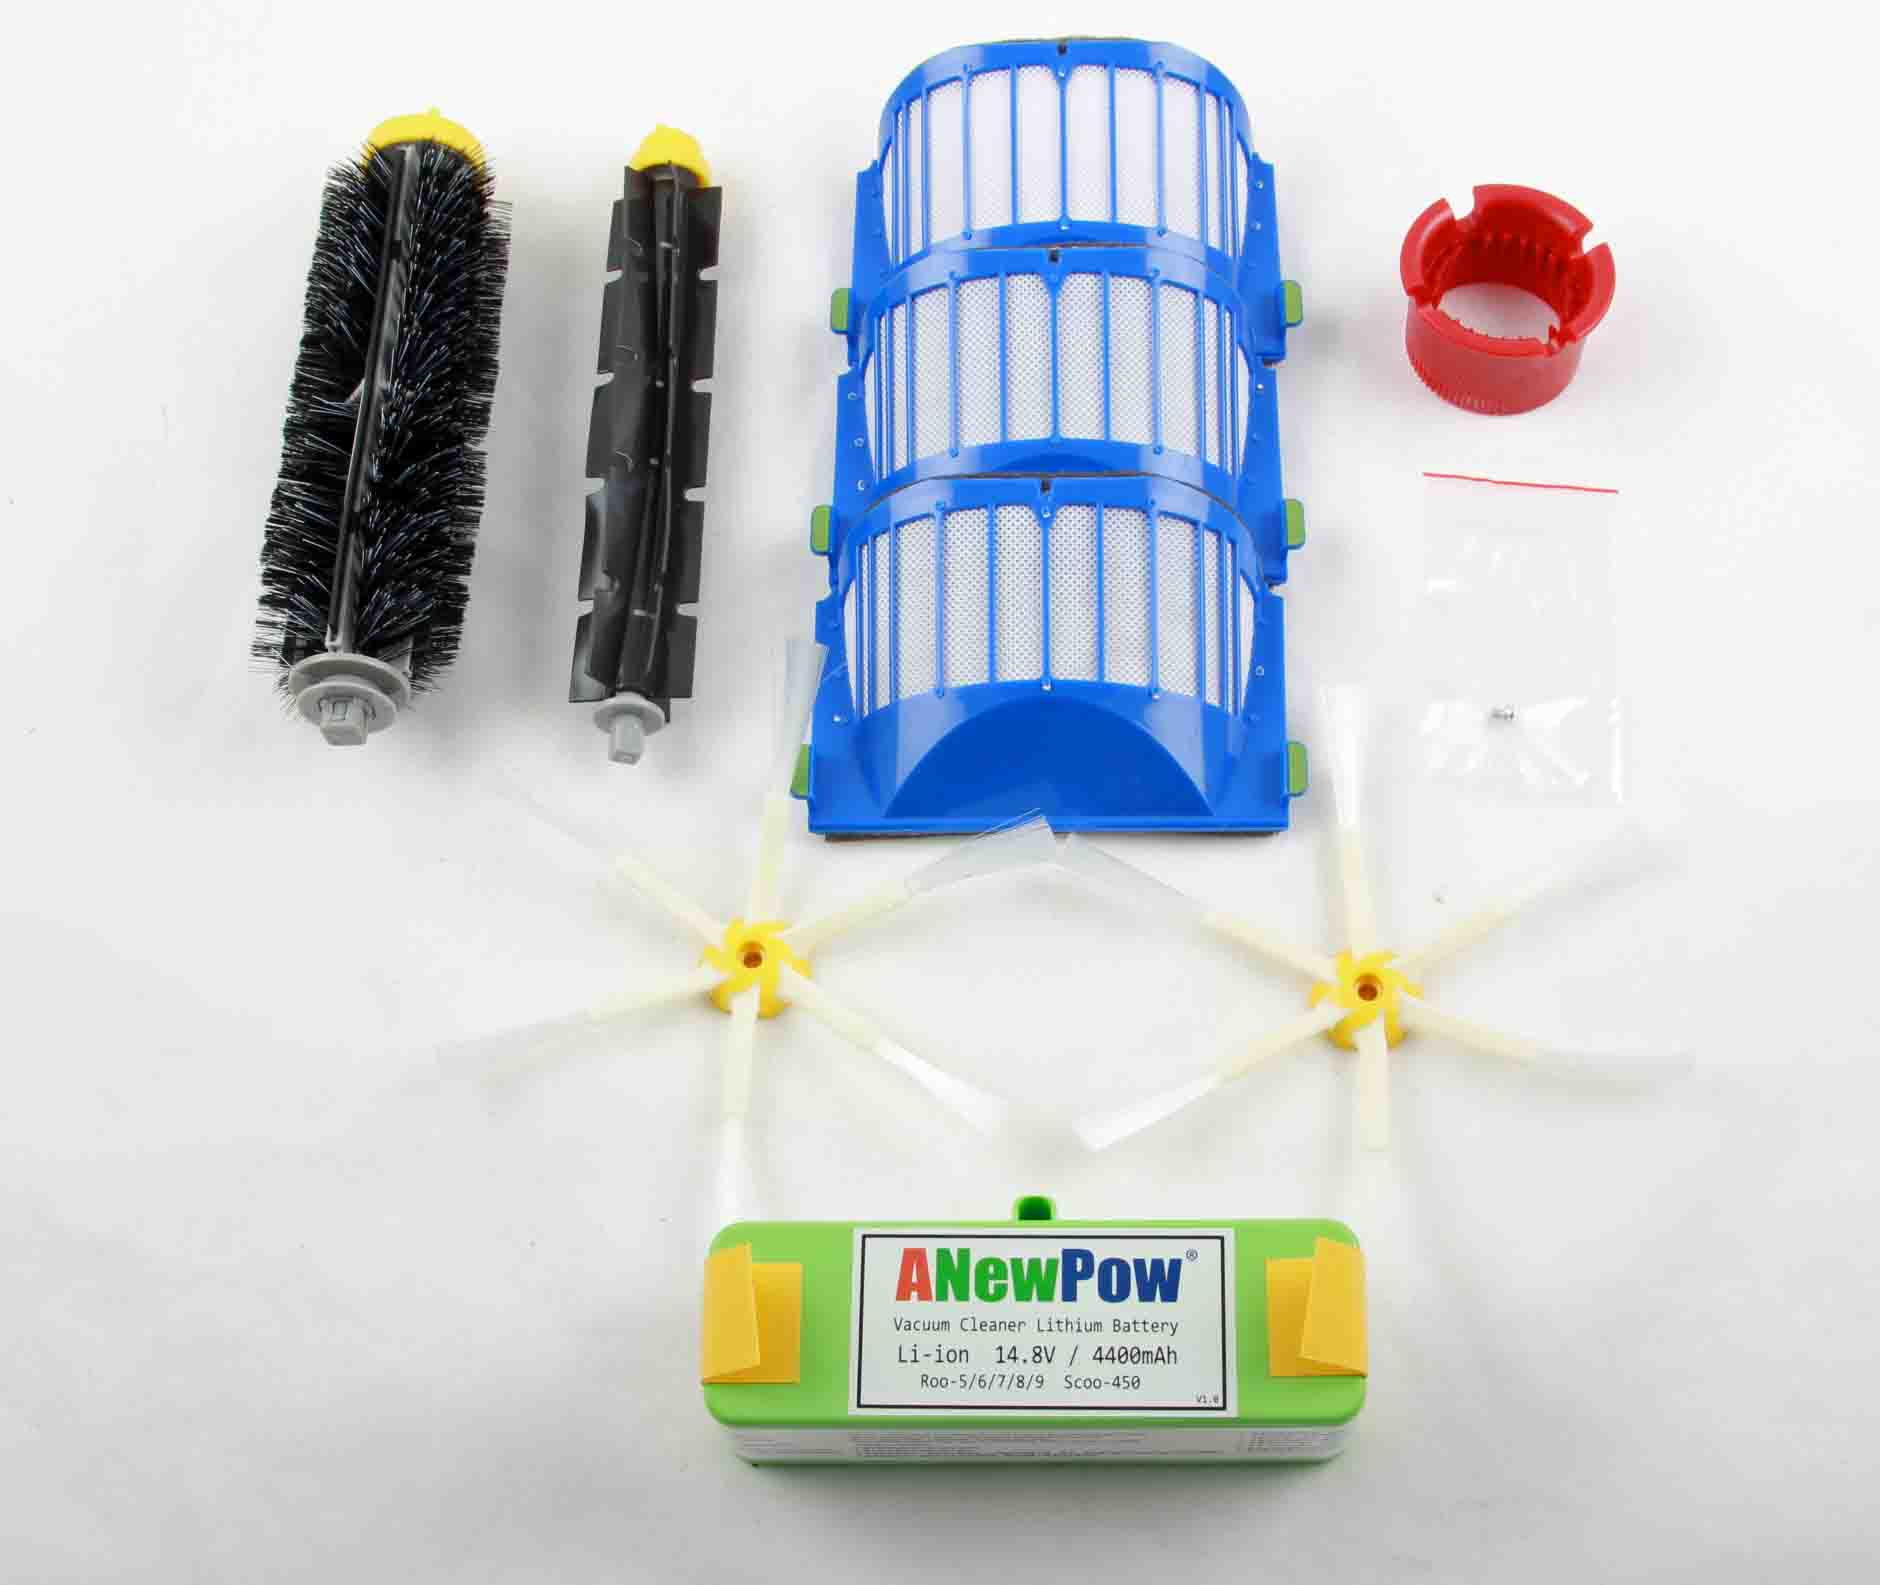 Roomba 600 Series Replenishment Kit Arm Brush 4400mAH Lithium Battery